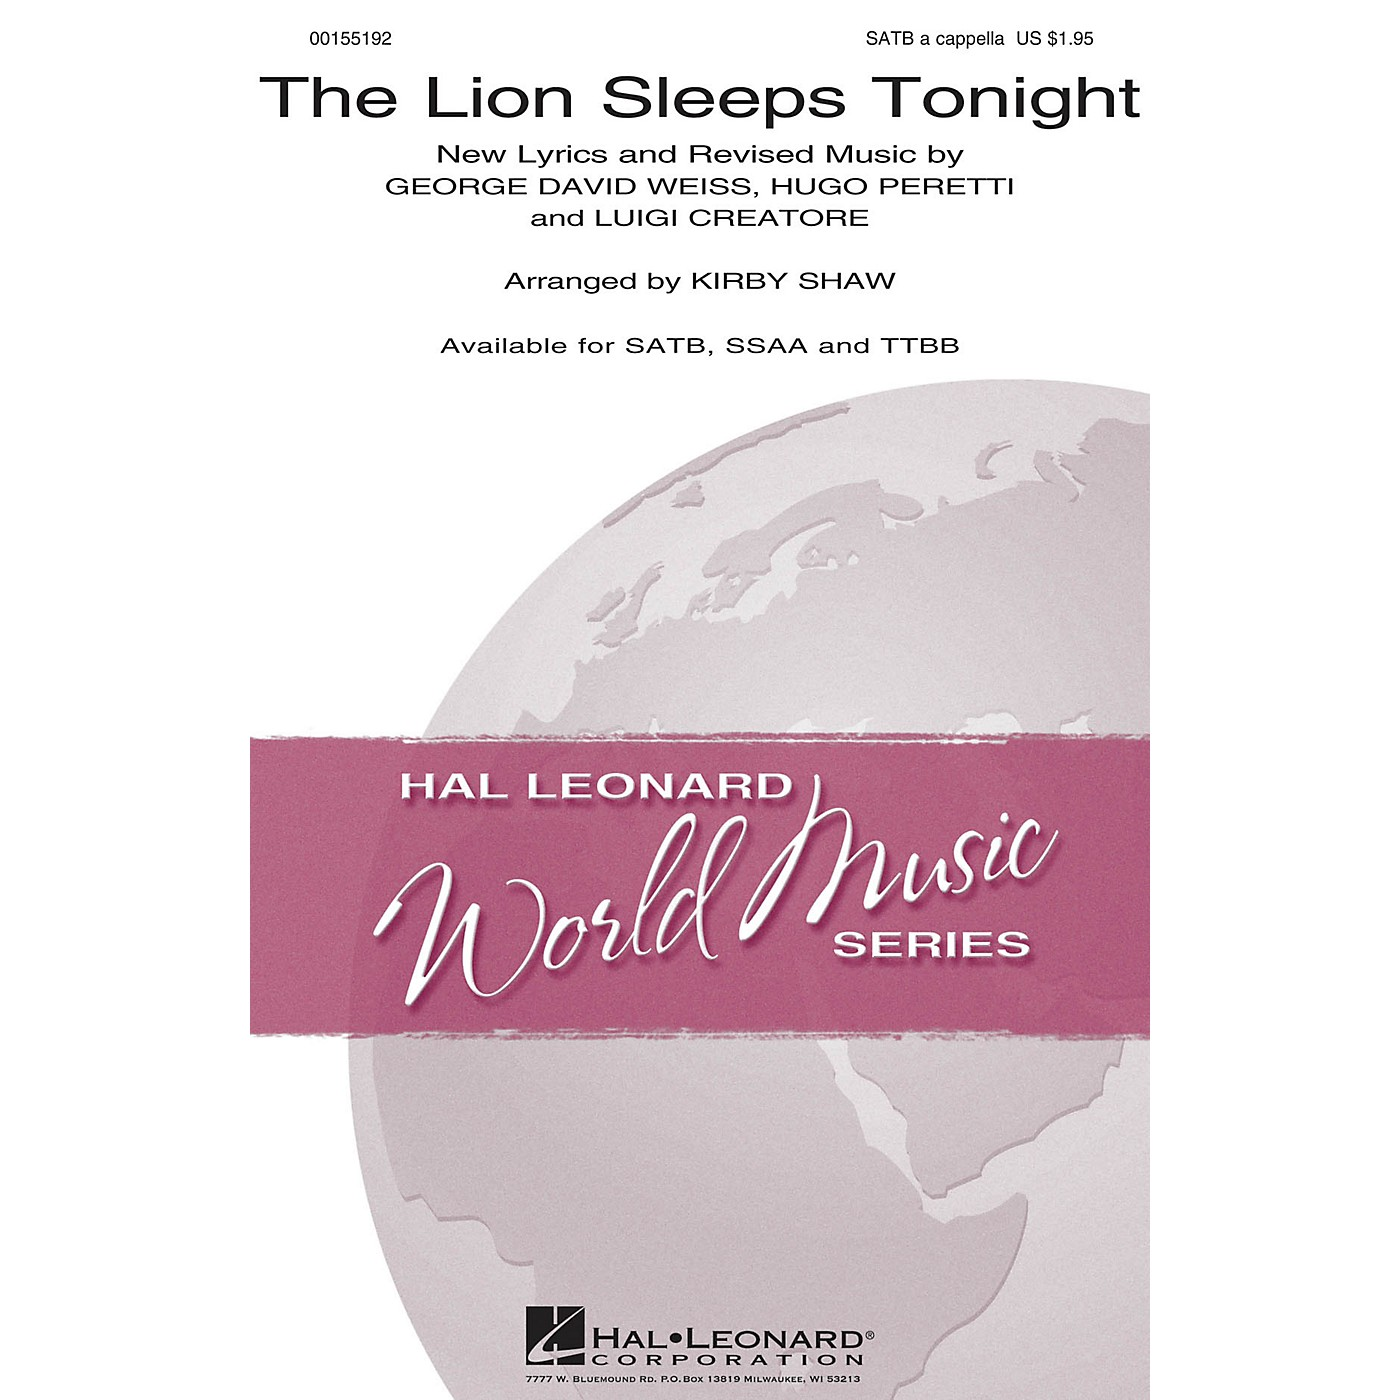 Hal Leonard The Lion Sleeps Tonight SATB a cappella by The Tokens arranged by Kirby Shaw thumbnail